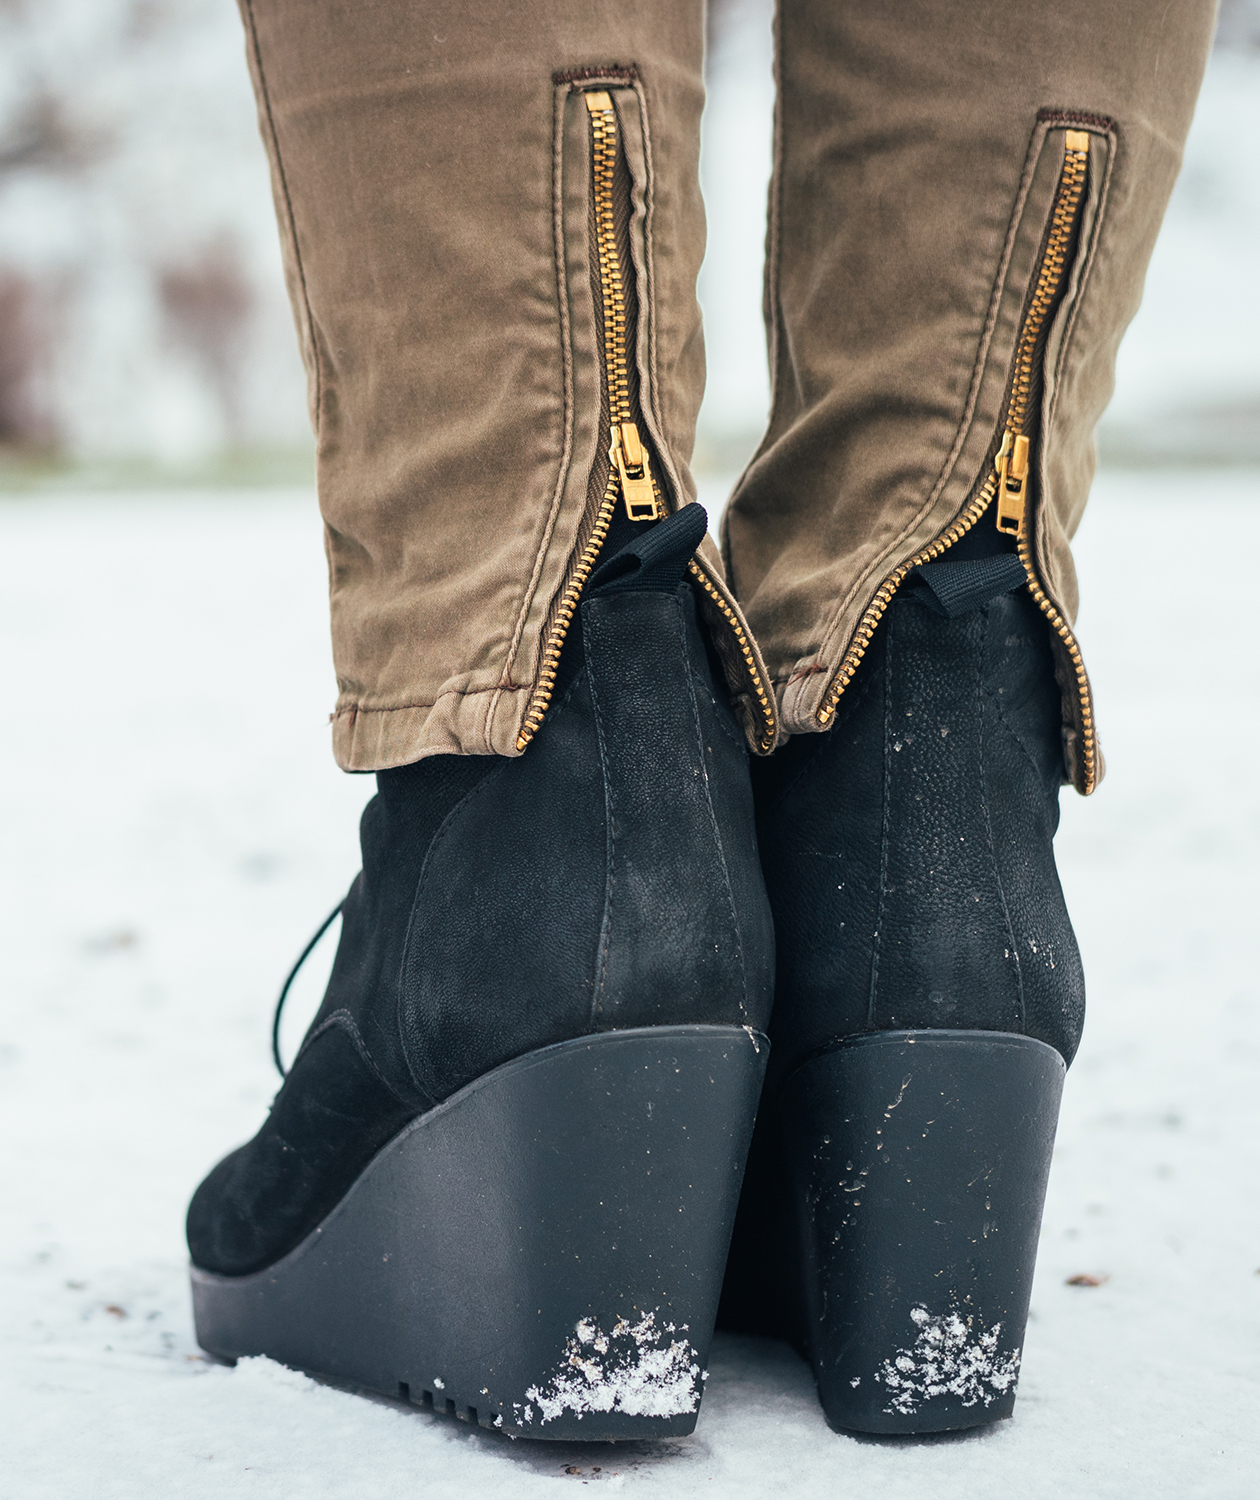 Black wedge heels in the snow